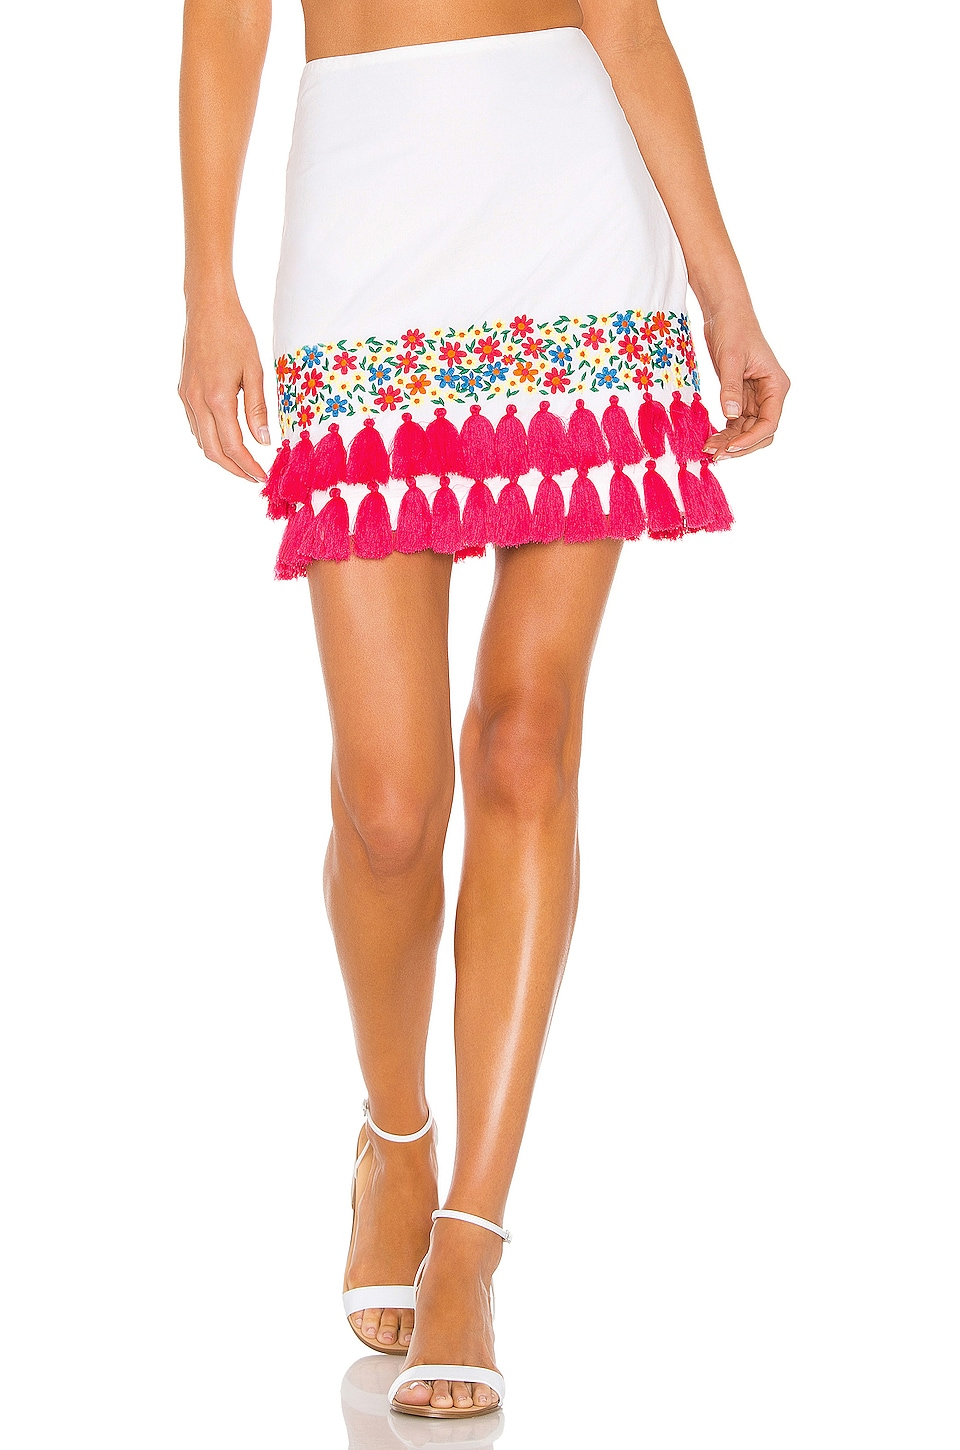 Tularosa Millie Skirt in White Multi